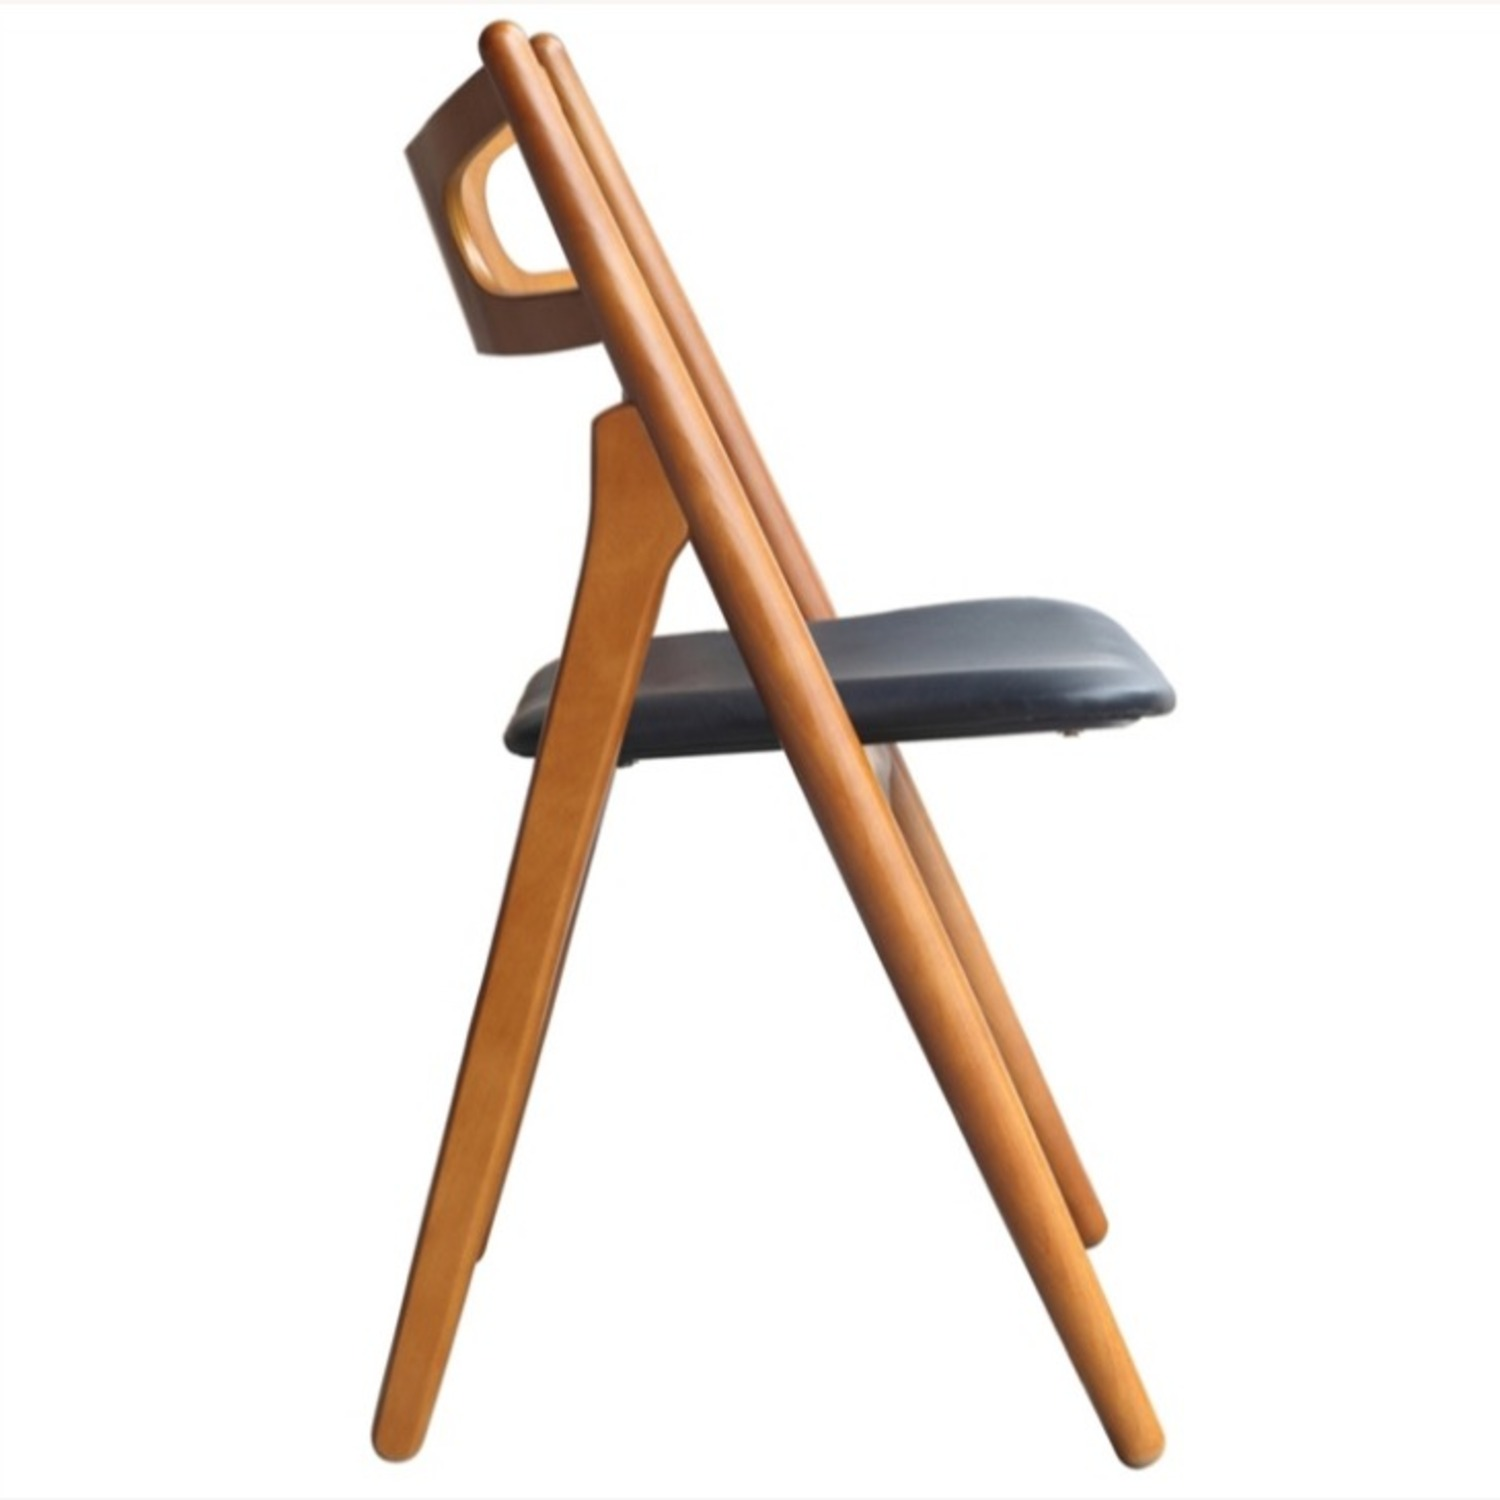 Modern Dining Chair In Walnut Wood Frame - image-3